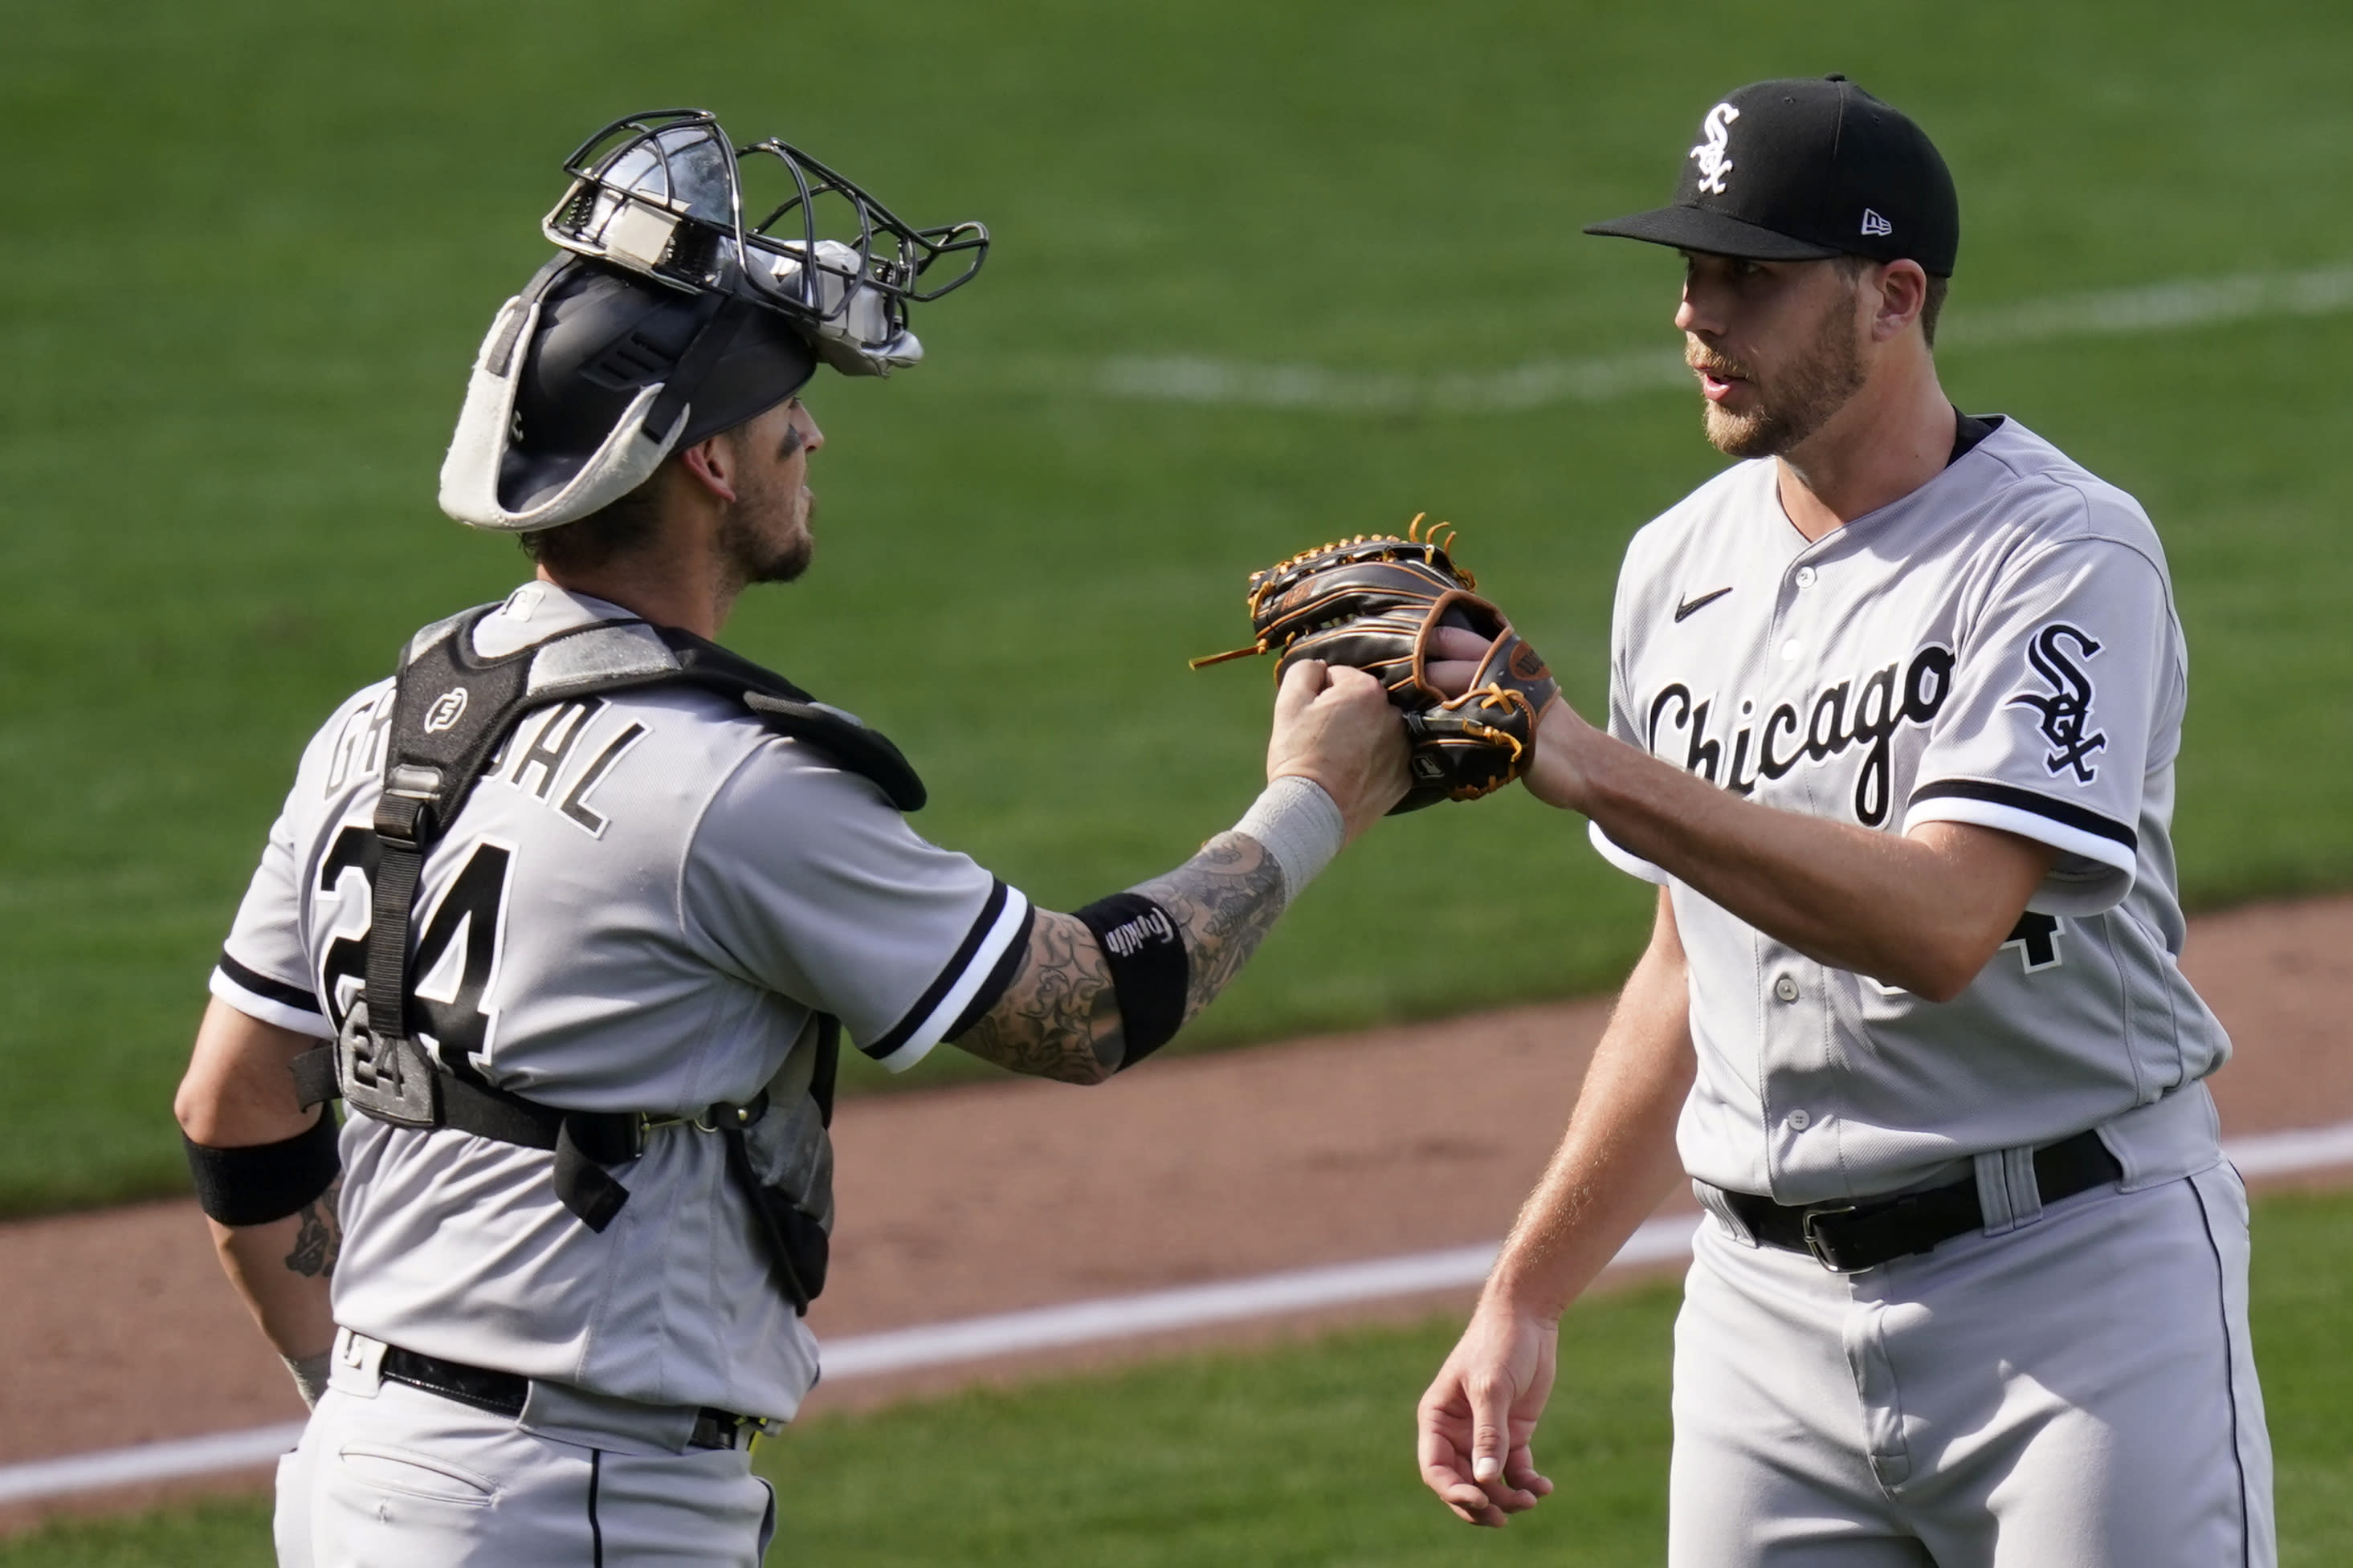 Chicago White Sox pitcher Alex McRae, right, and catcher Yasmani Grandal (24) celebrate following a baseball game against the Kansas City Royals at Kauffman Stadium in Kansas City, Mo., Sunday, Sept. 6, 2020. The Chicago White Sox defeated the Kansas City Royals 8-2. (AP Photo/Orlin Wagner)